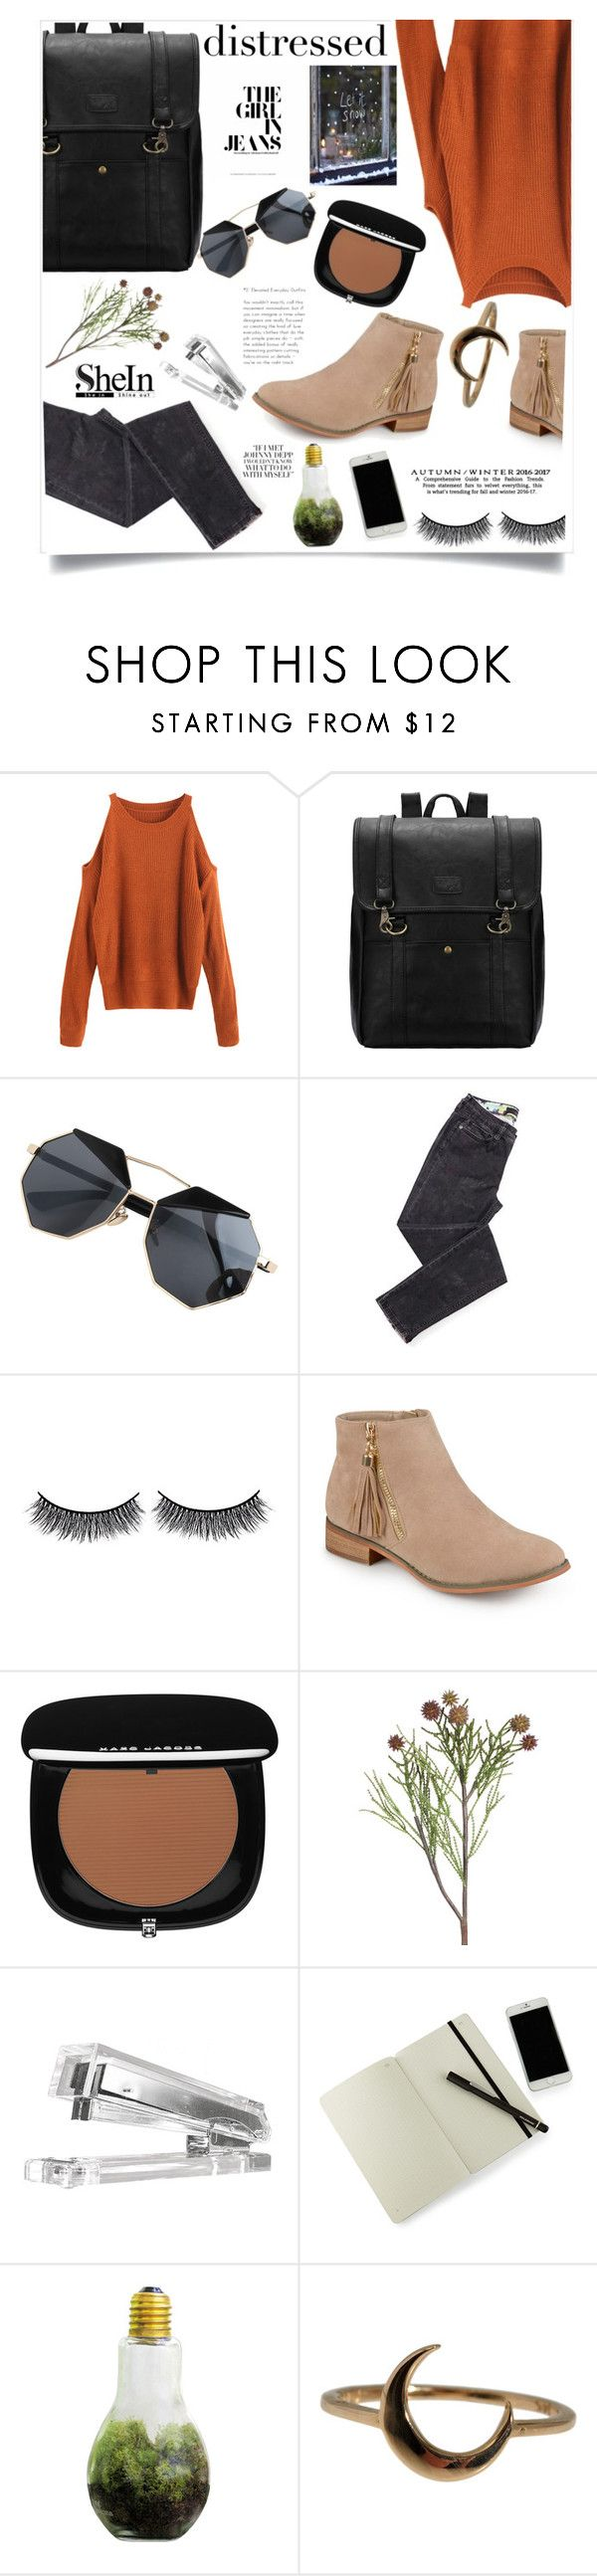 """Iris and Ink"" by violet-peach ❤ liked on Polyvore featuring Battington, Journee Collection, Marc Jacobs, Moleskine, Dot & Bo and Lulu Frost"